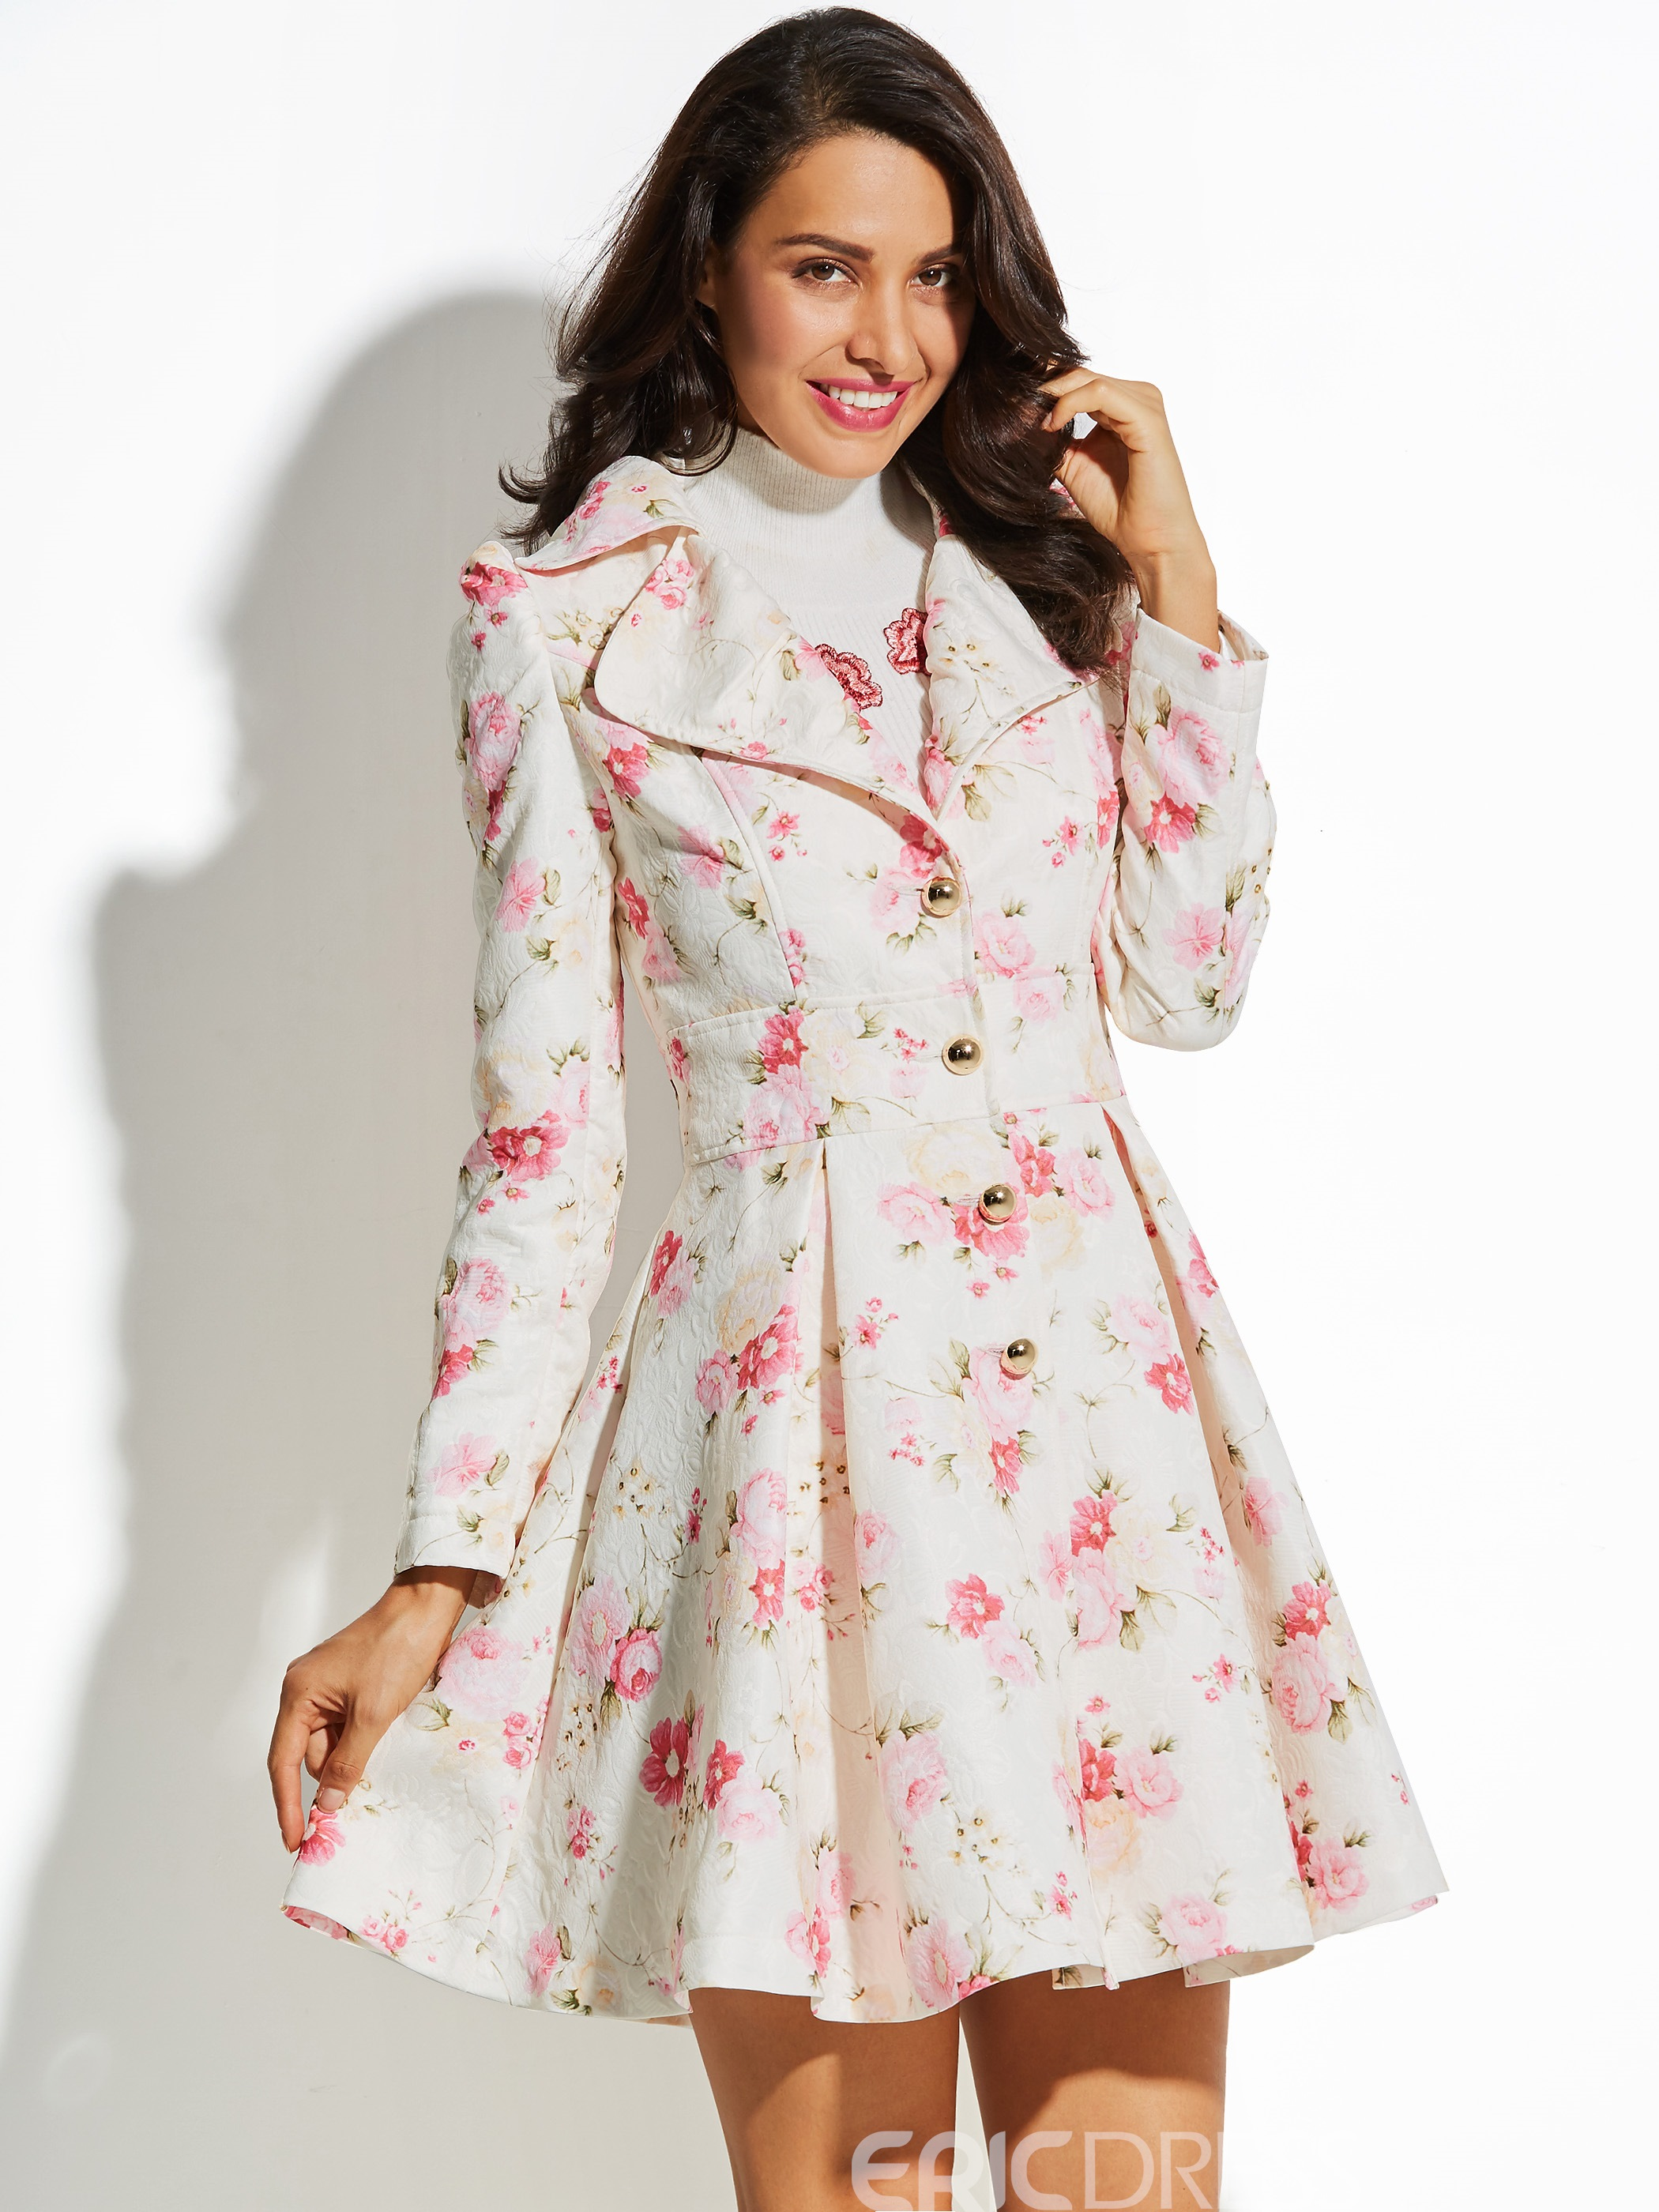 Ercdress Floral Sweet A-line Vacation Overcoat